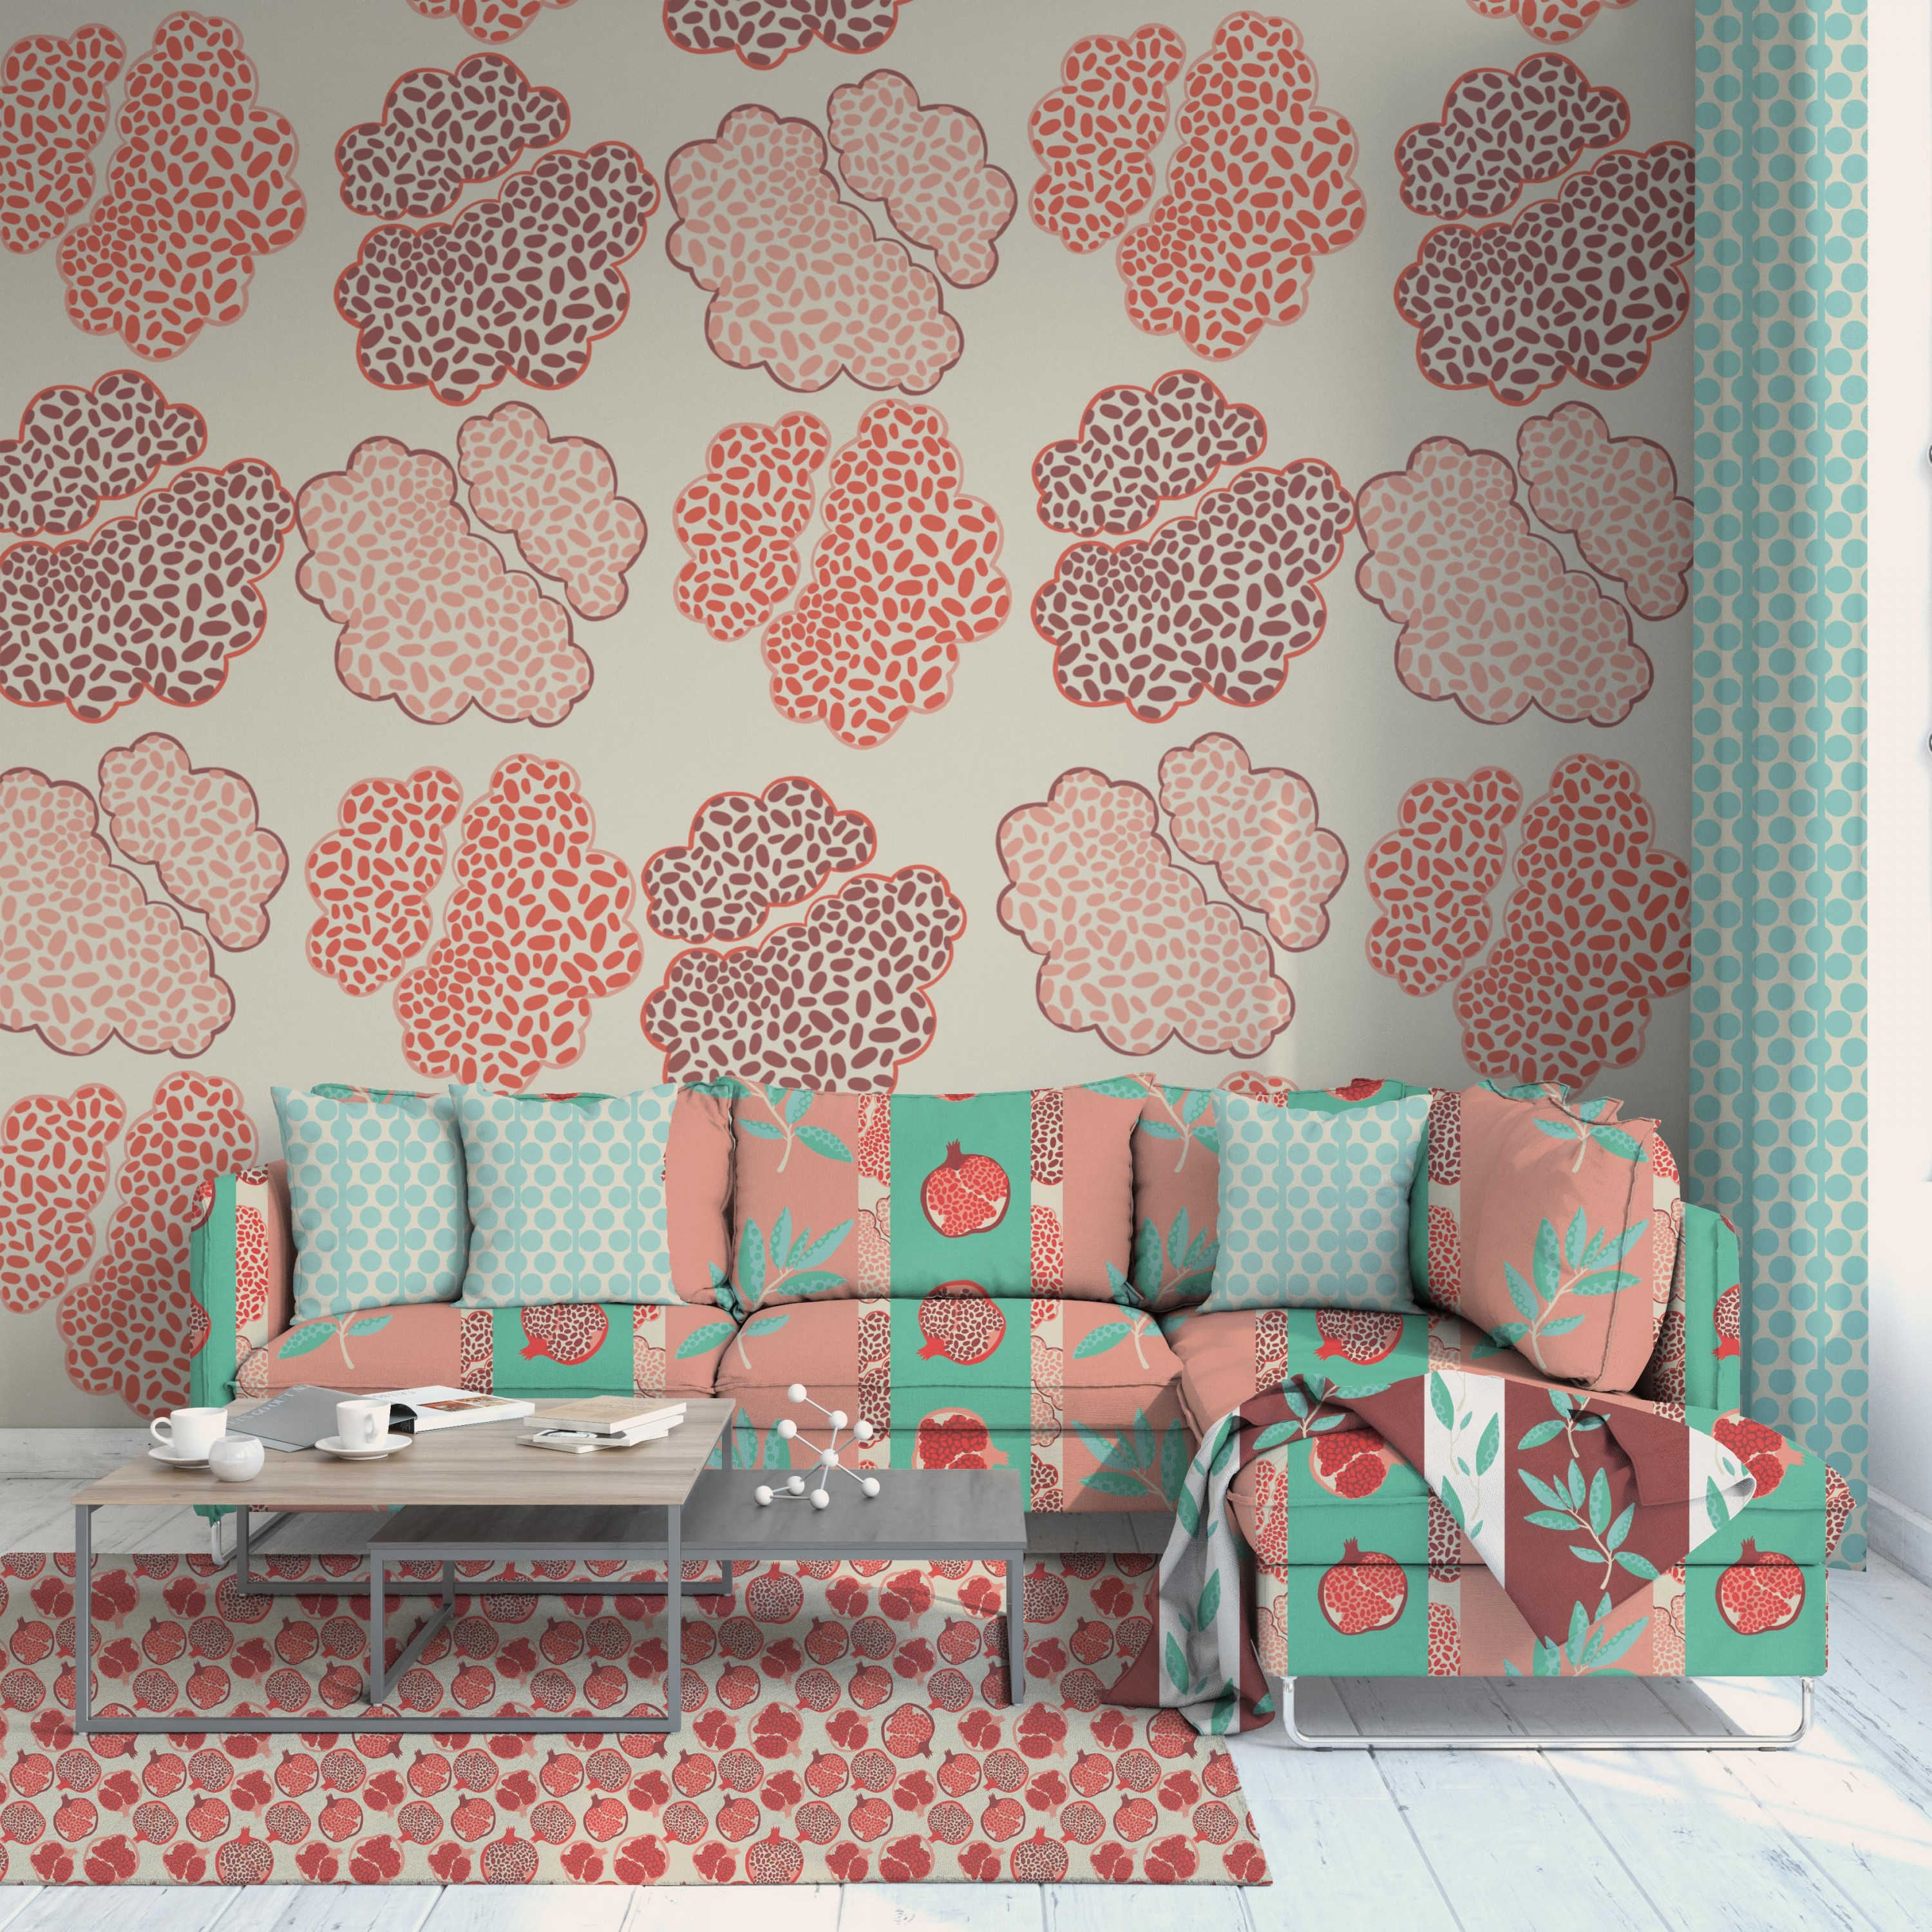 The second image is of the same living room but with a beige background of red and pink pomegranate seed pattern. The curtain and couch pillow have a beige and blue green polka dot pattern. The rug is of red and pink pomegranates with a beige background a